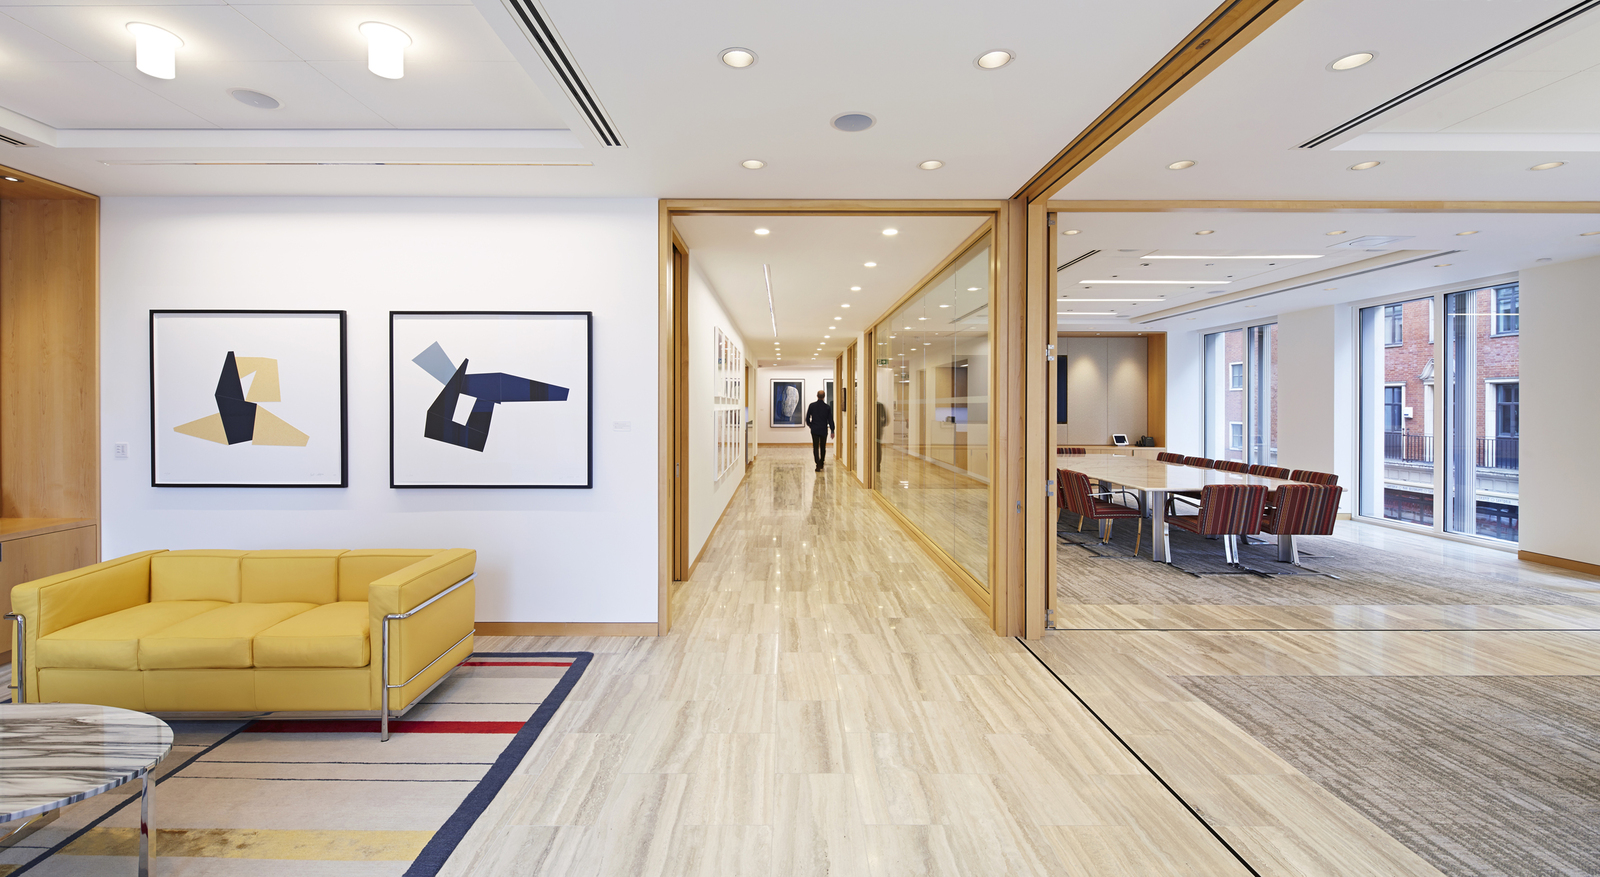 Folding Pocket Doors In The Conference Wing Maximize Natural Light And Provide Flexibility Acoustic Control